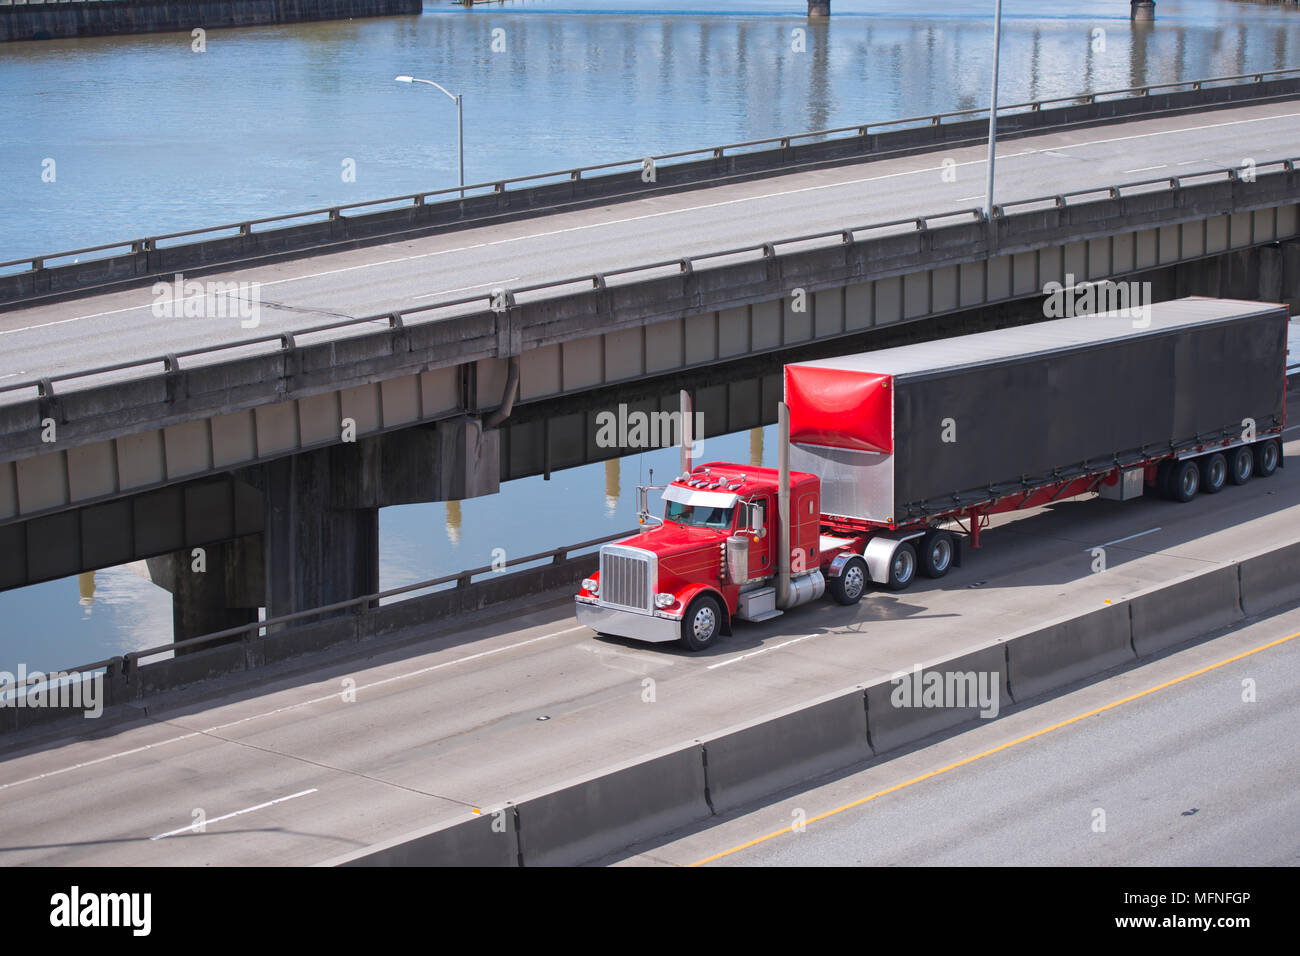 big rig red classic american semi truck transporting commercial cargo in covered dry van semi trailer